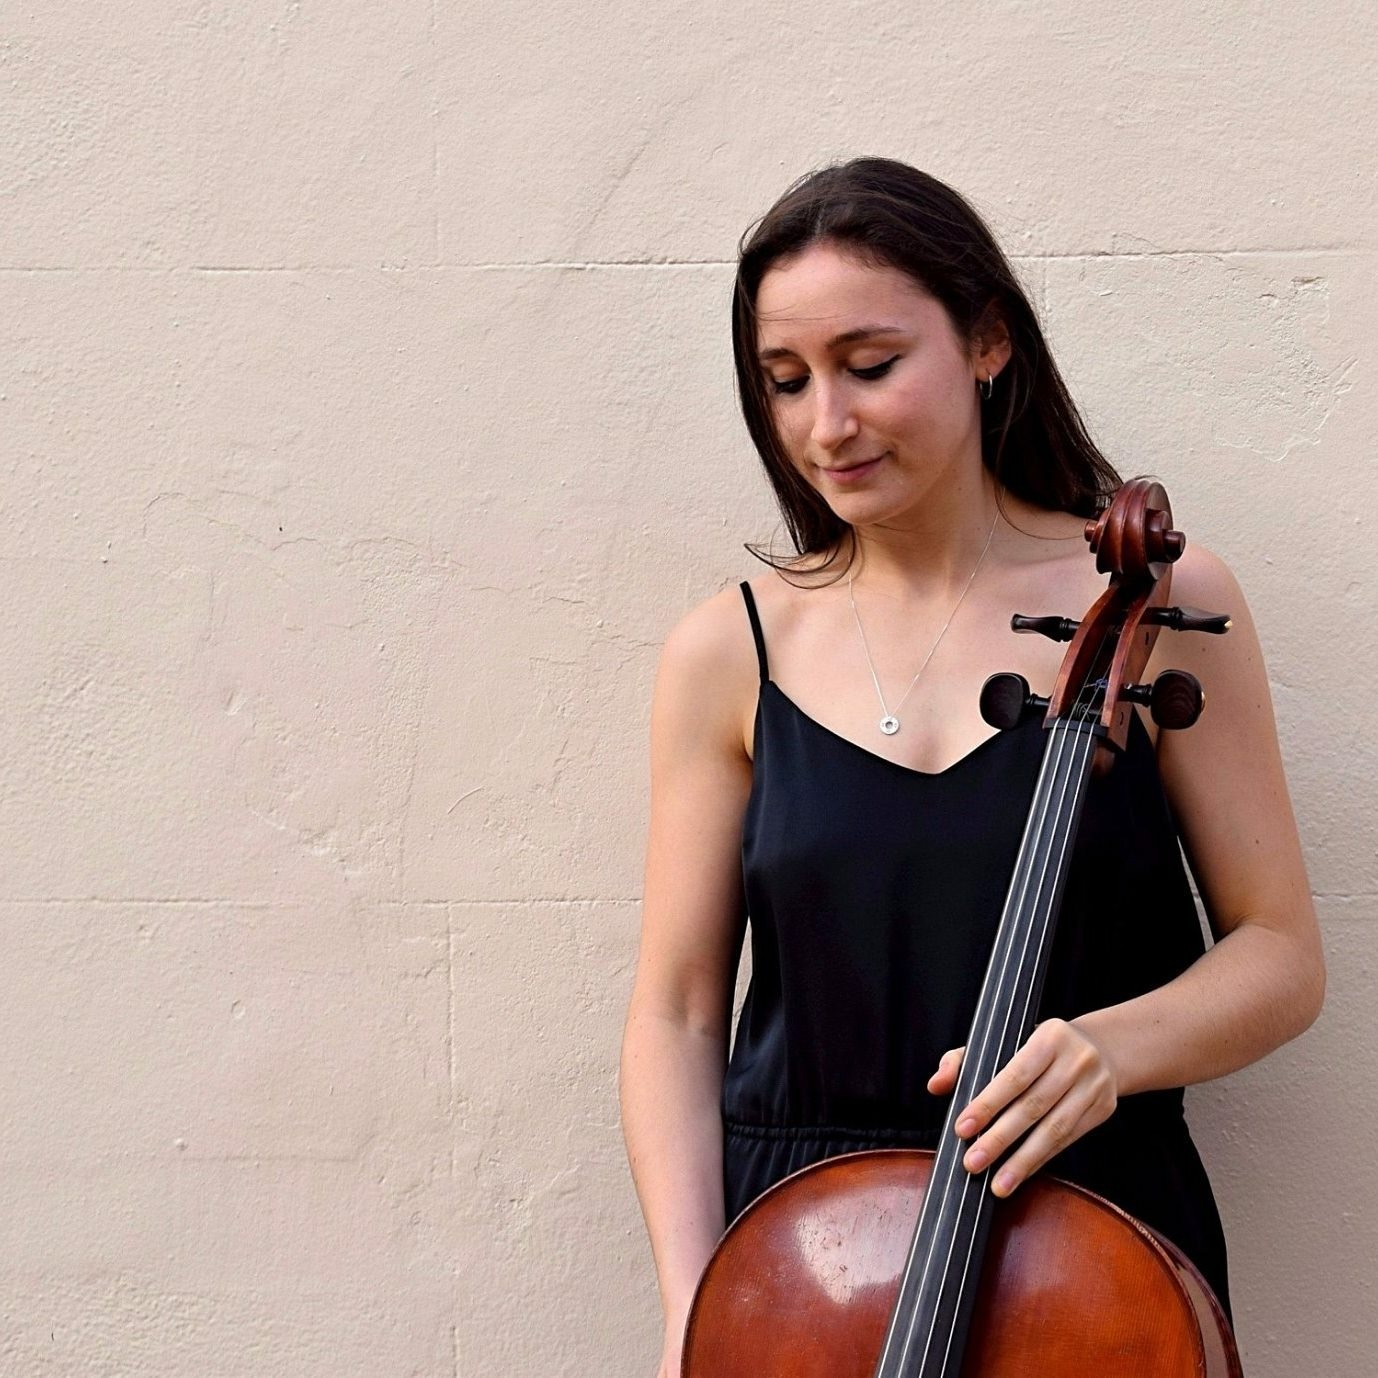 Cellist, Eliza Millet, is still completing her master's degree at the Royal Academy of Music but she showed during the LDSM recital that her playing has already reached a fully professional standard